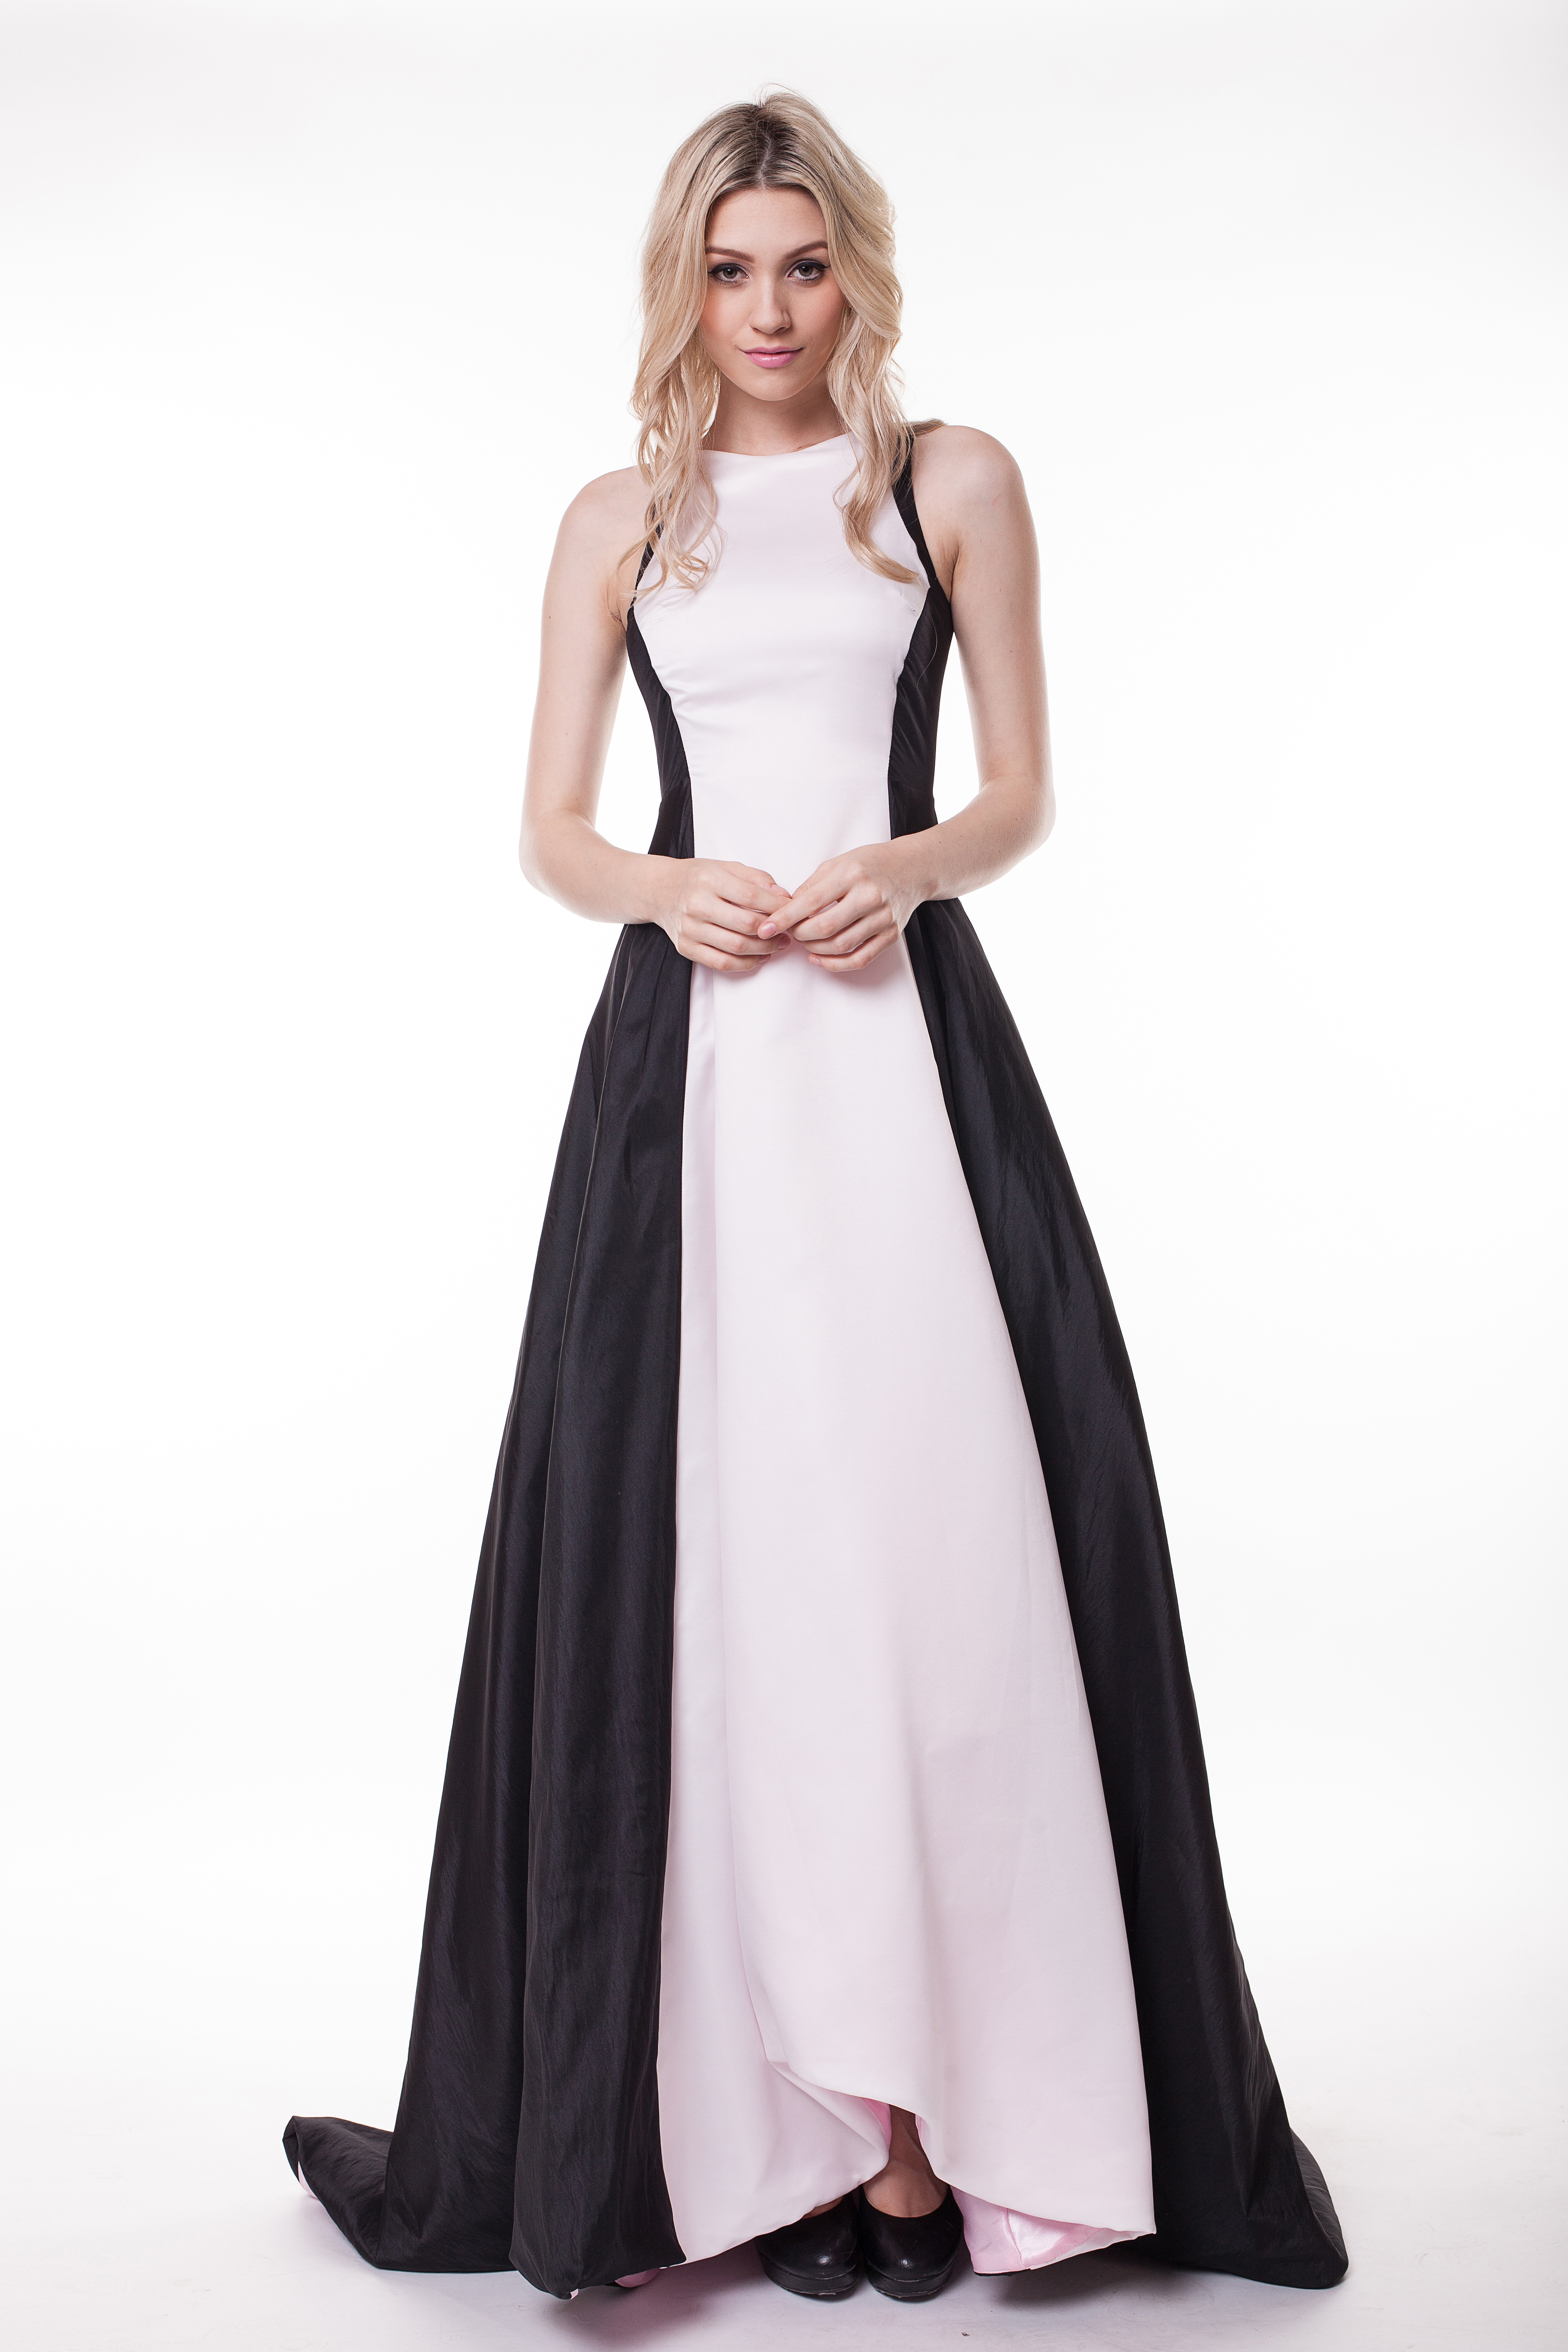 Plus Size Evening Gowns In Atlanta Ga - Eligent Prom Dresses